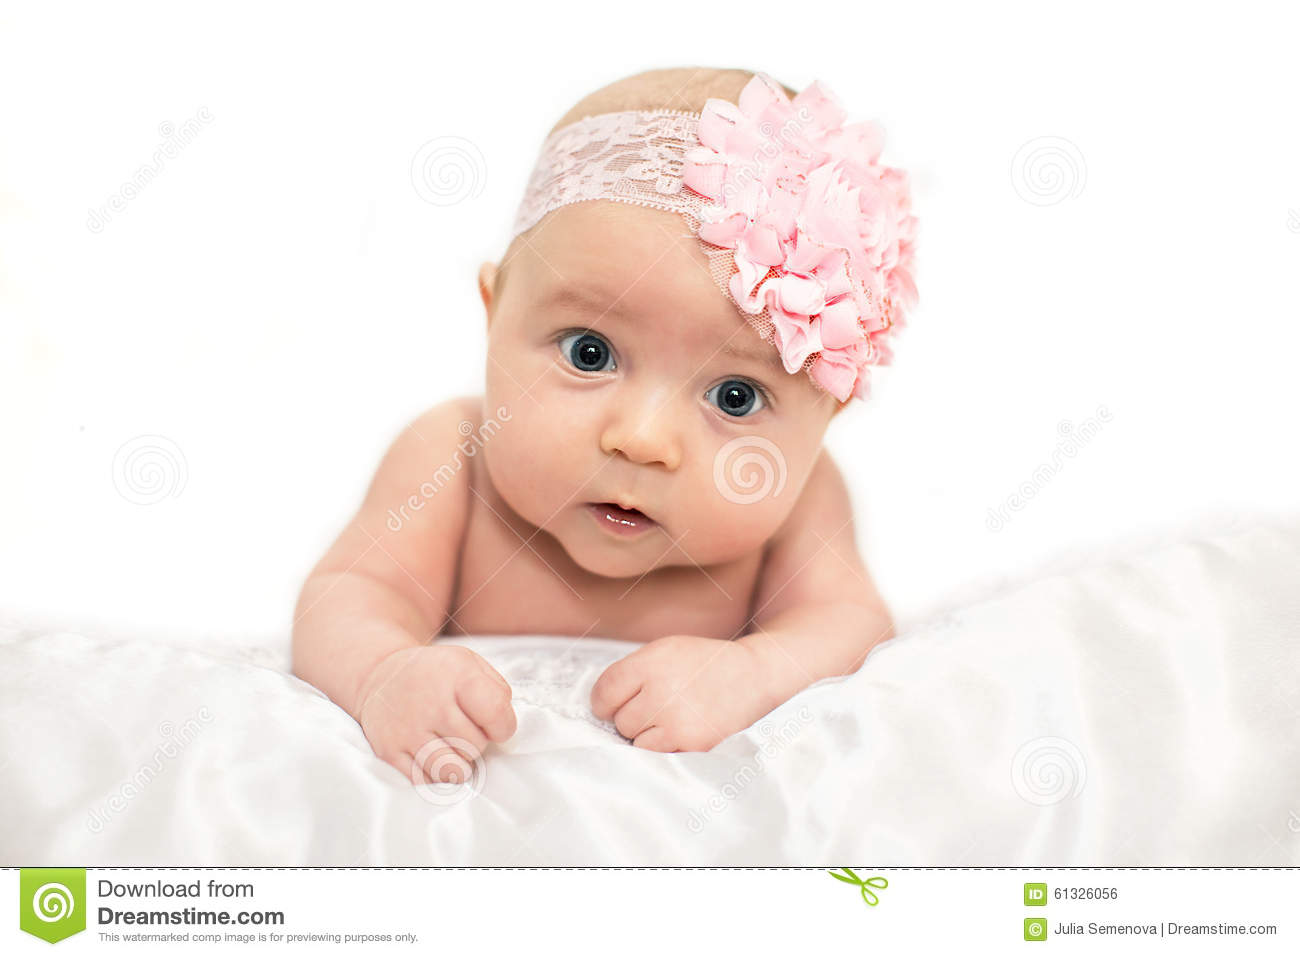 If you're looking for baby girl names for your future daughter, Babble has tons of girl names to choose from, complete with meanings and origins.